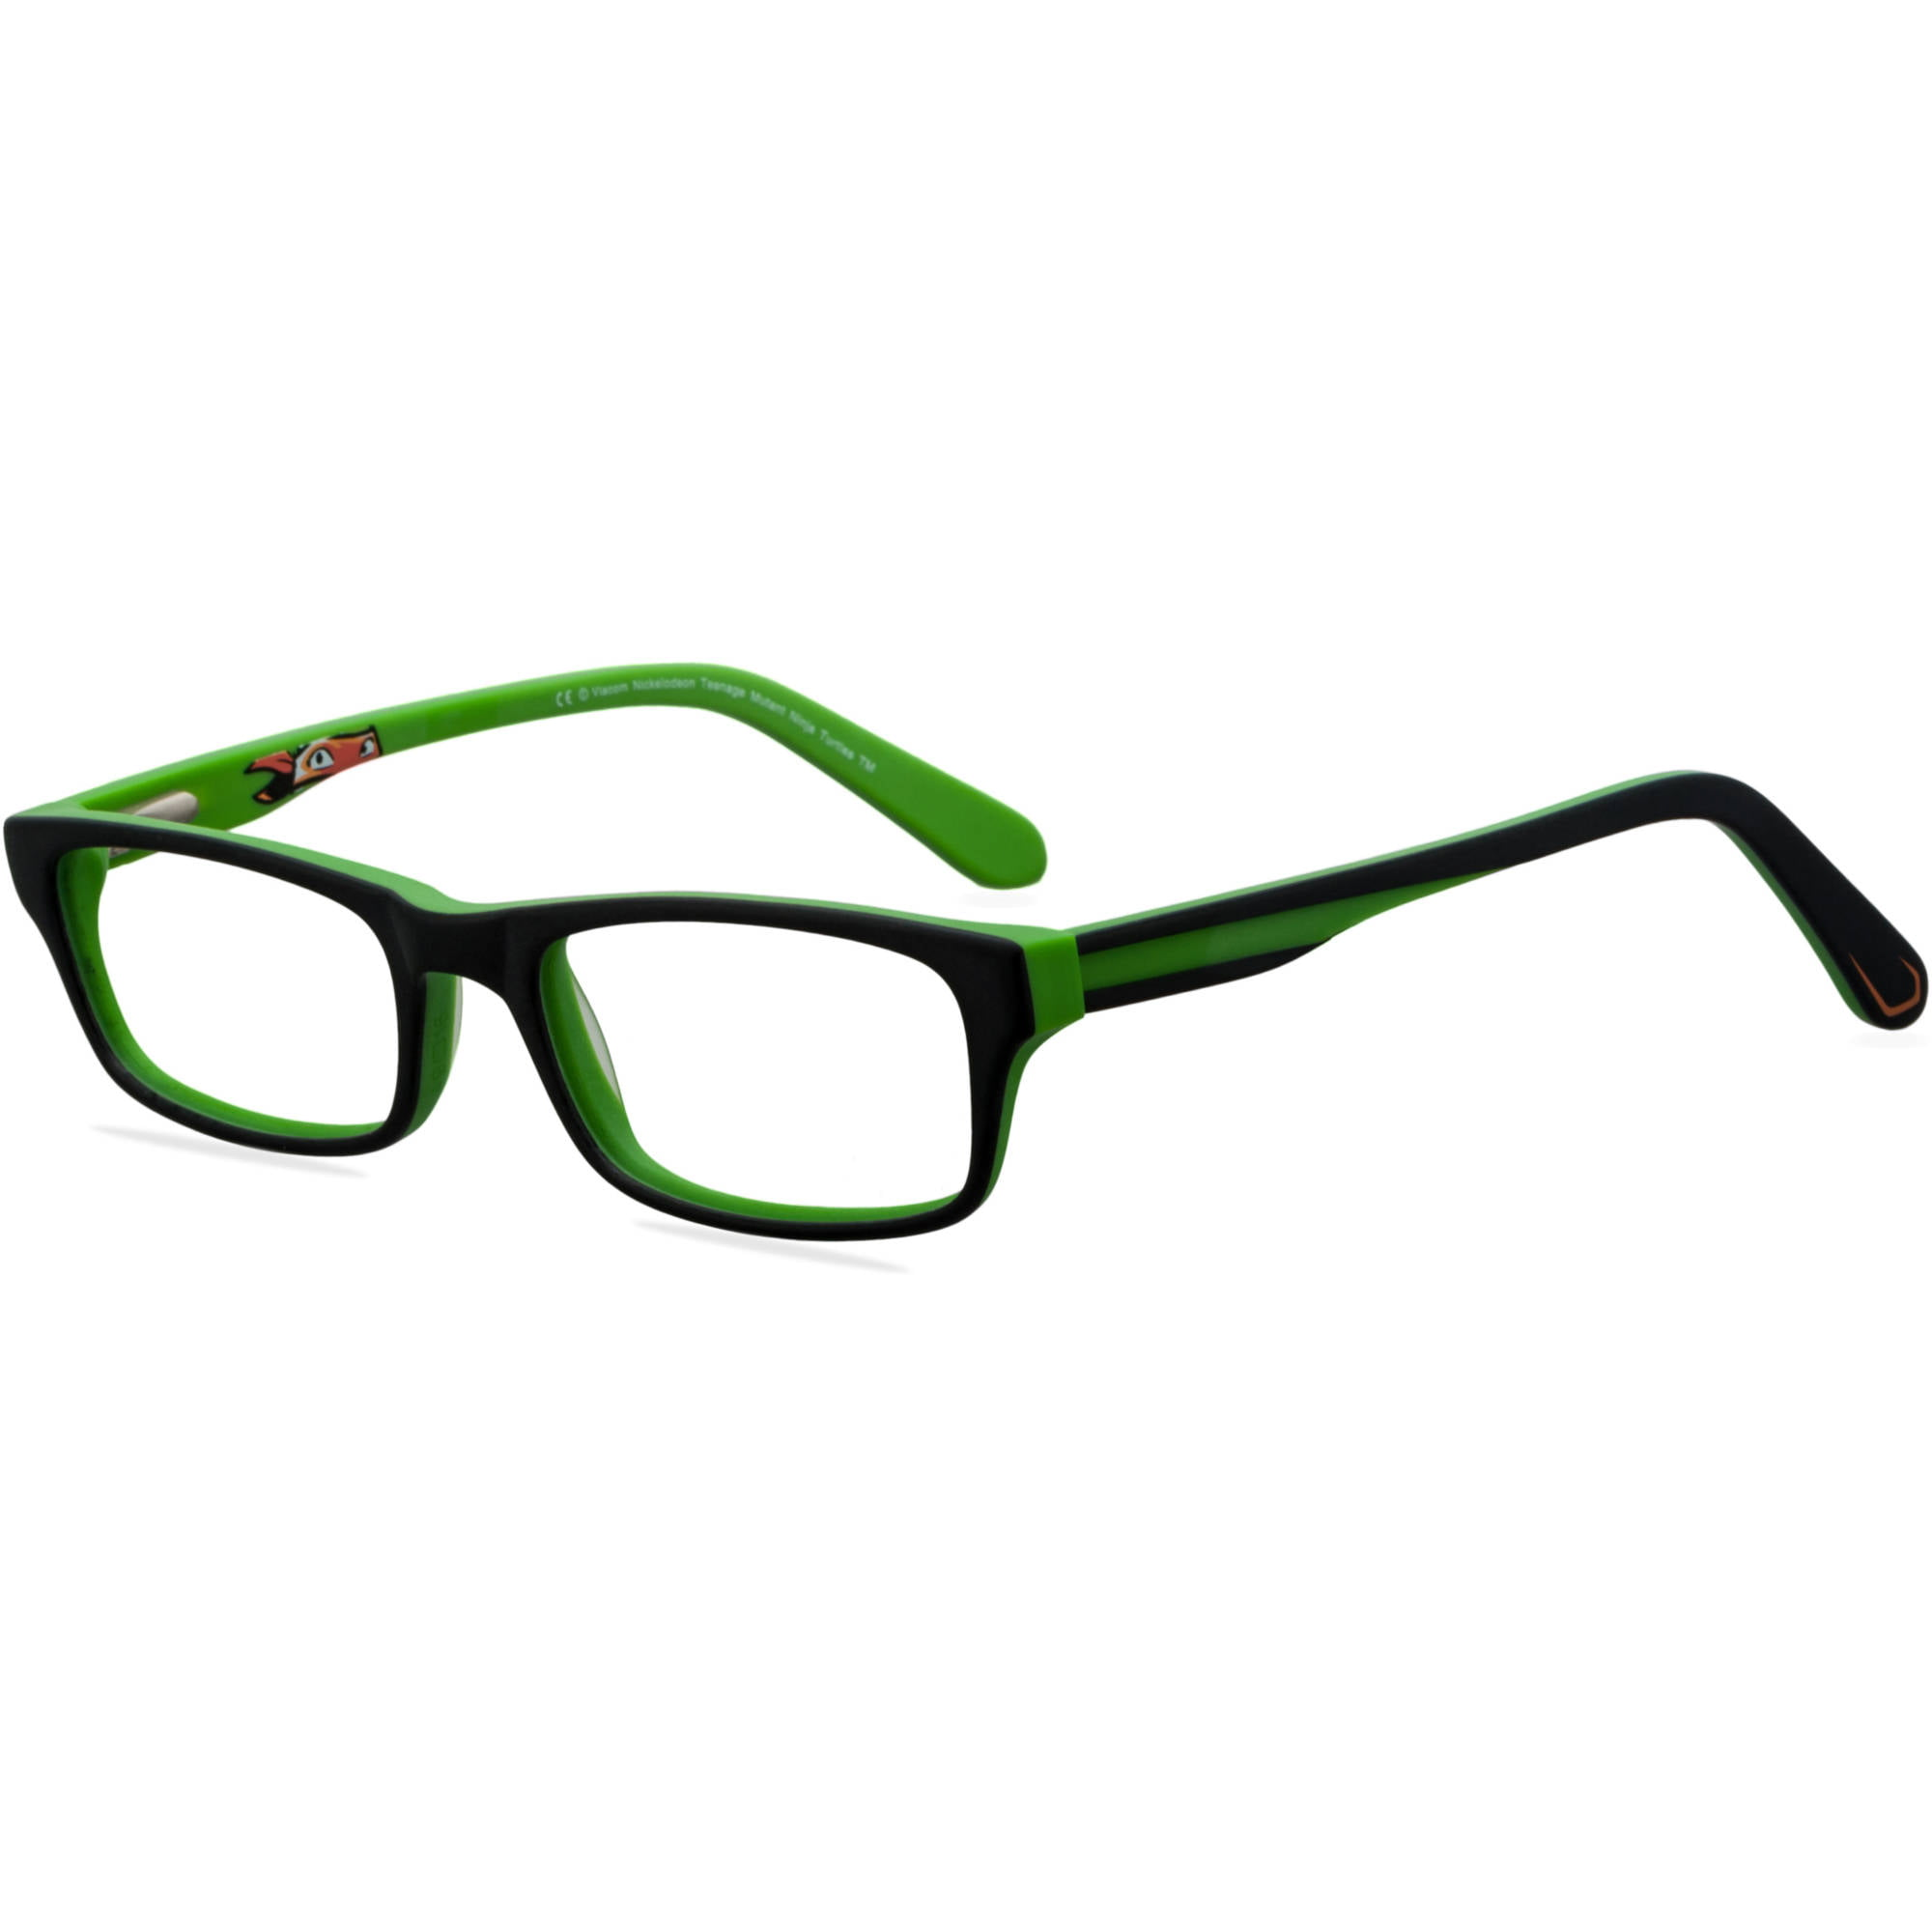 69f90fcbb3 Prescription Eyeglasses - Walmart.com